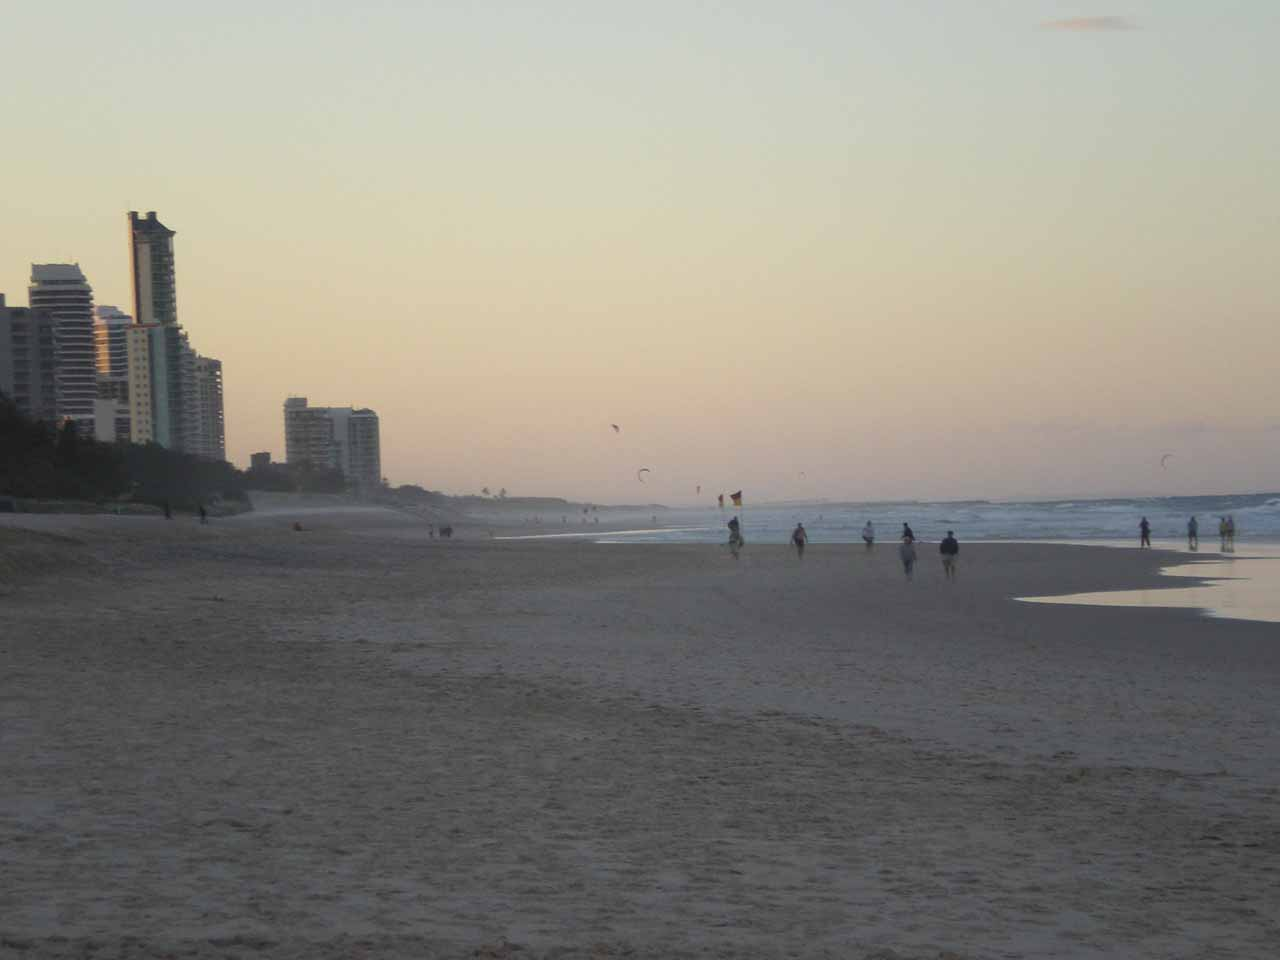 Looking north along the beach at Surfer's Paradise